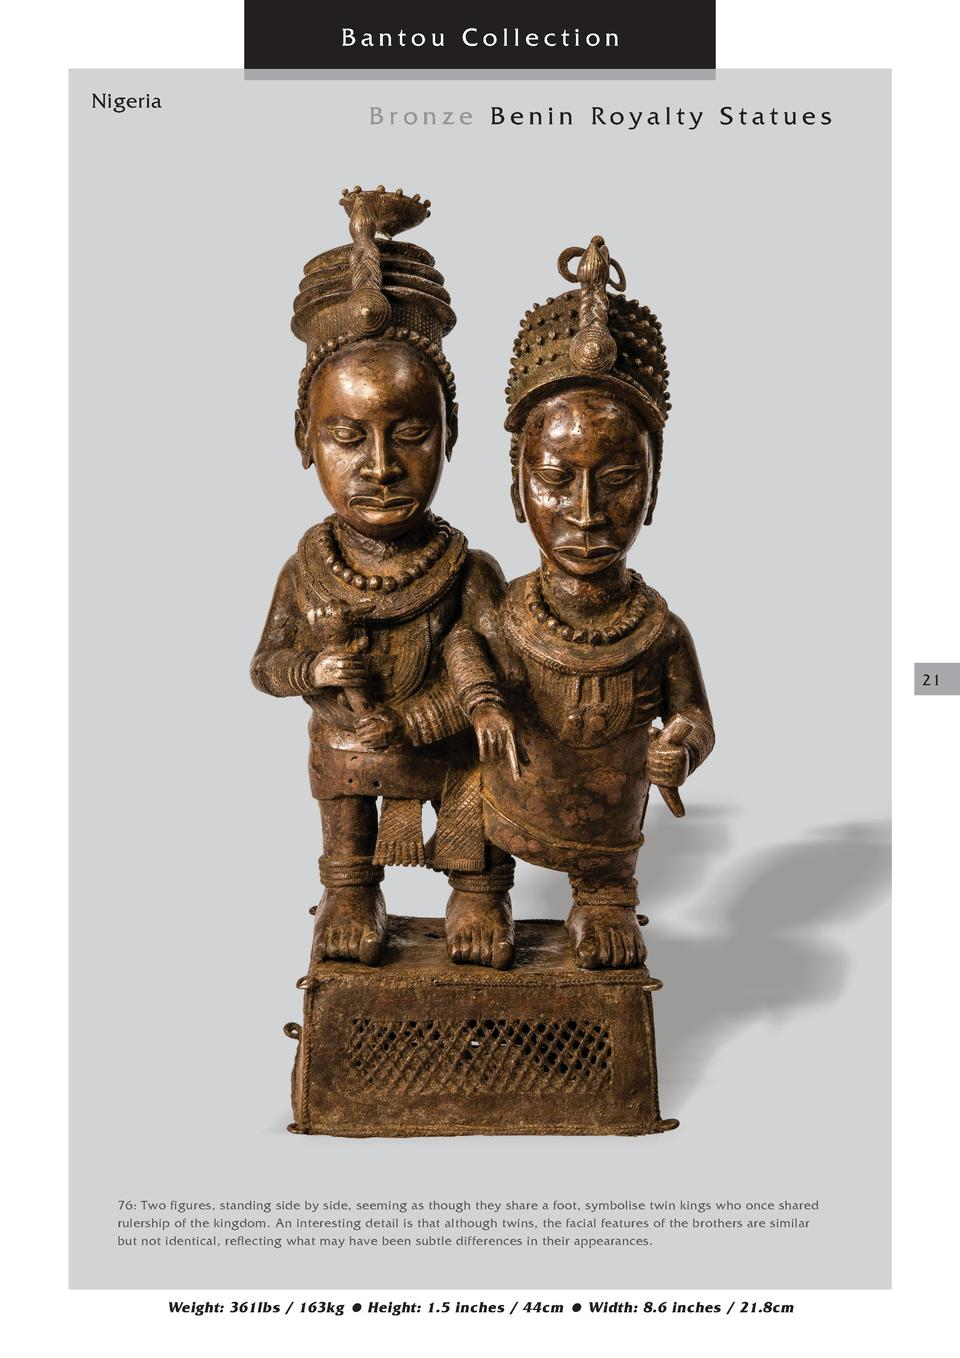 Bantou Collection Nigeria  Bronze Benin Royalty Statues  21  76  Two figures, standing side by side, seeming as though the...